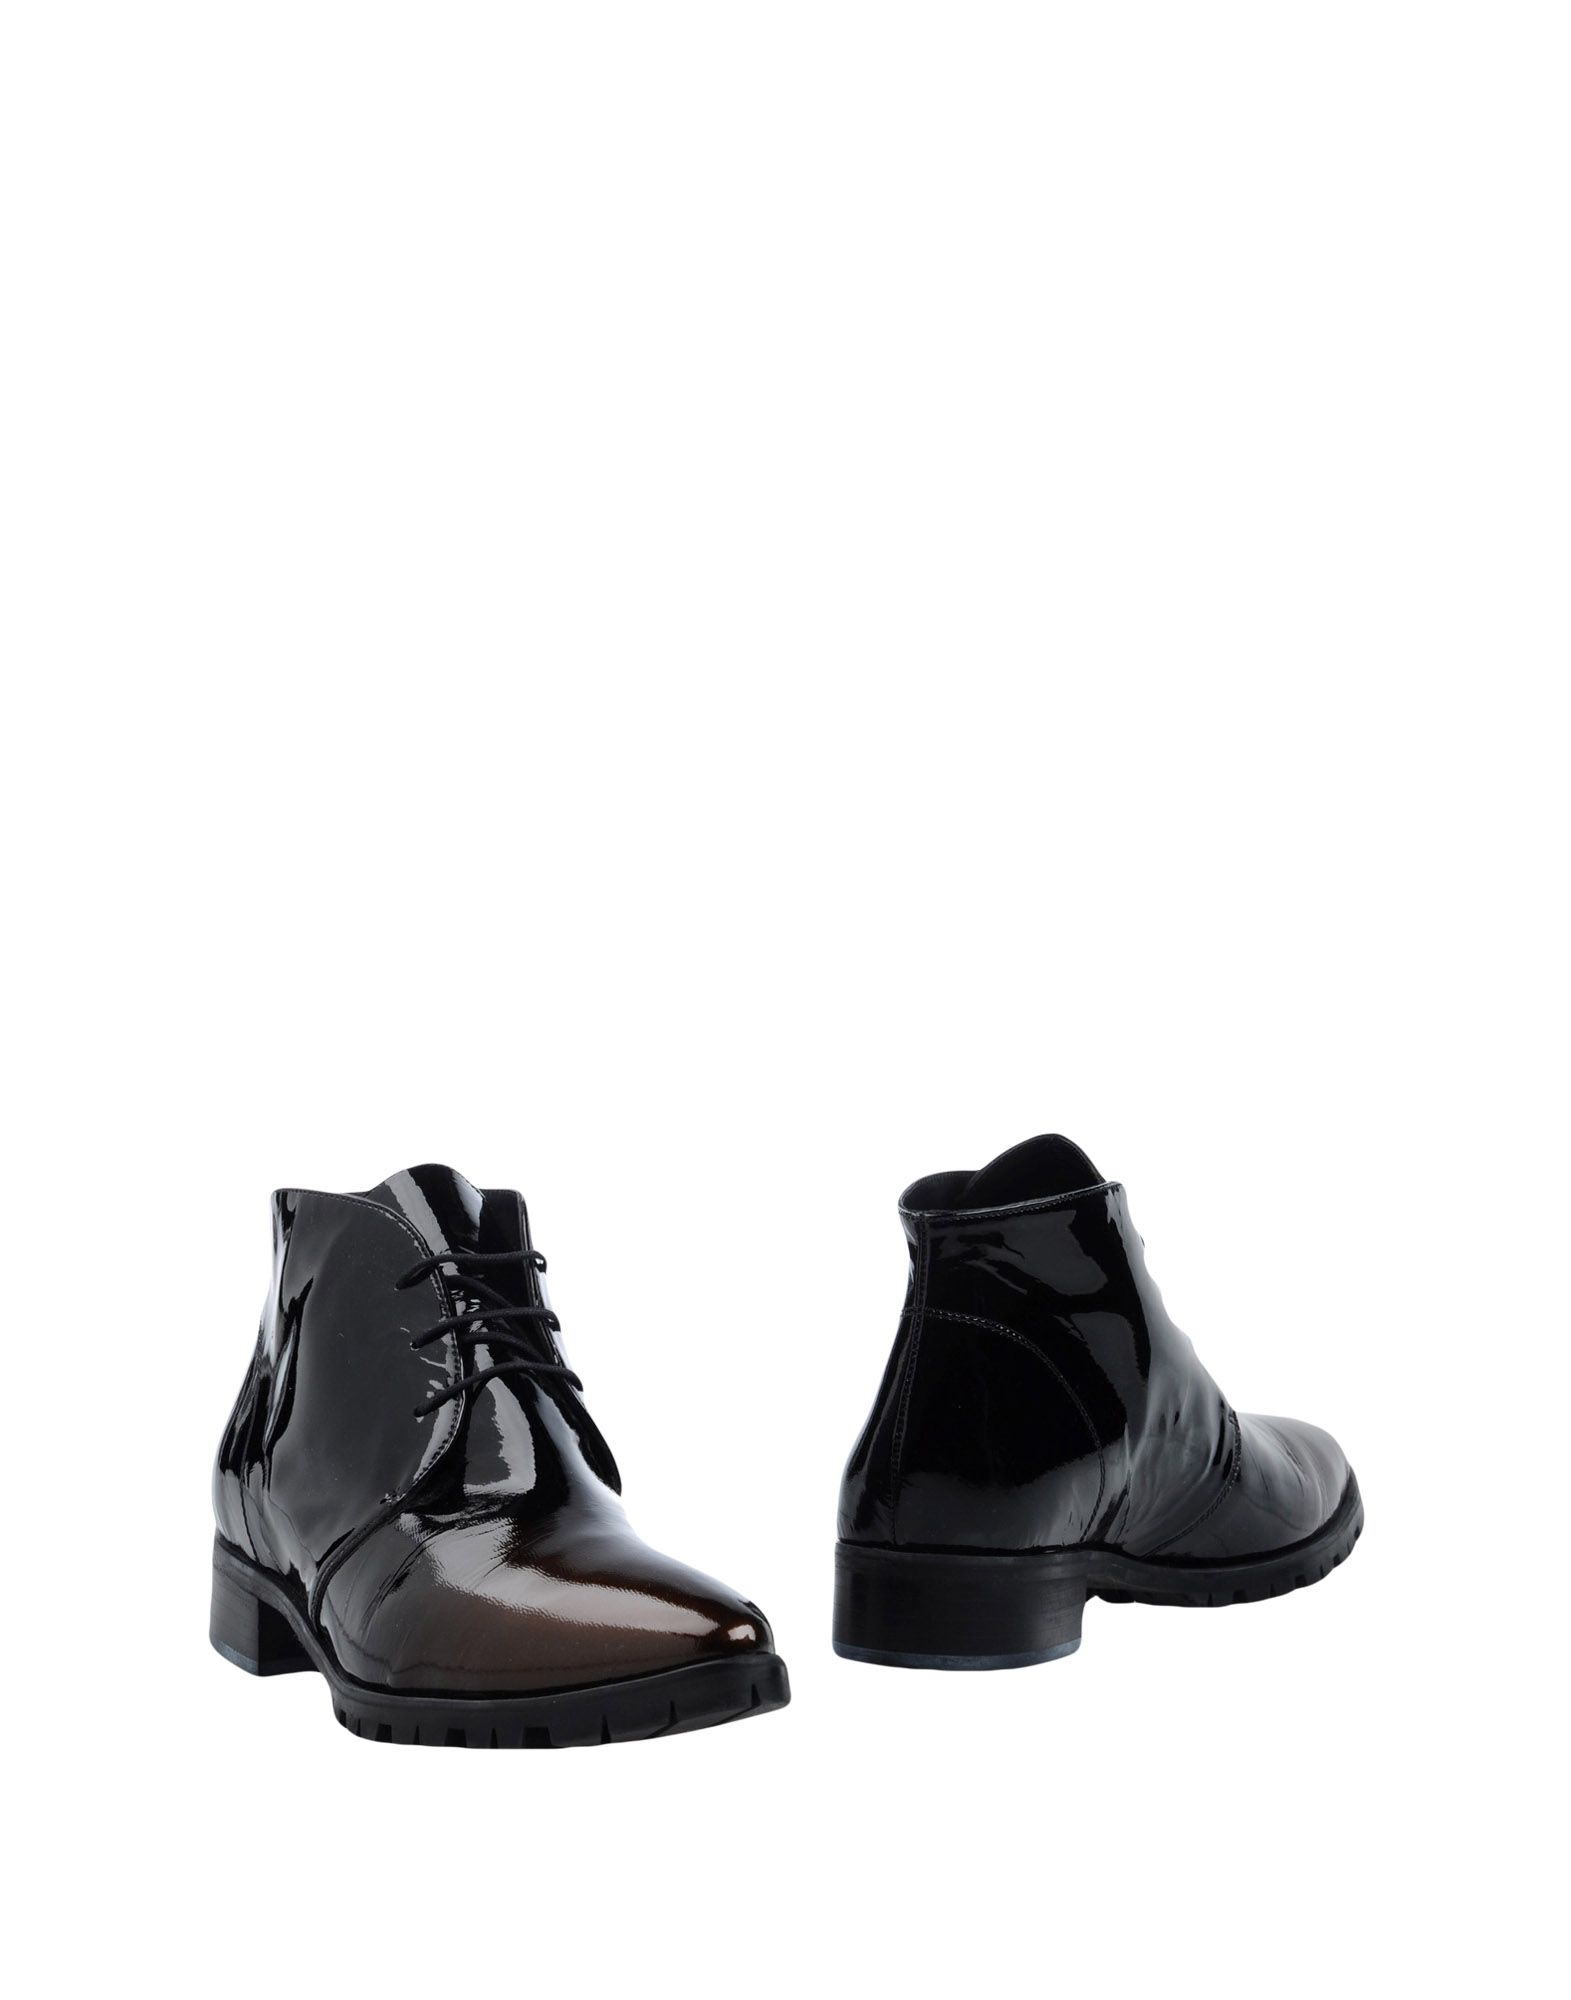 Pons Quintana Ankle Boot - Women Pons on Quintana Ankle Boots online on Pons  United Kingdom - 11257927VQ c789da